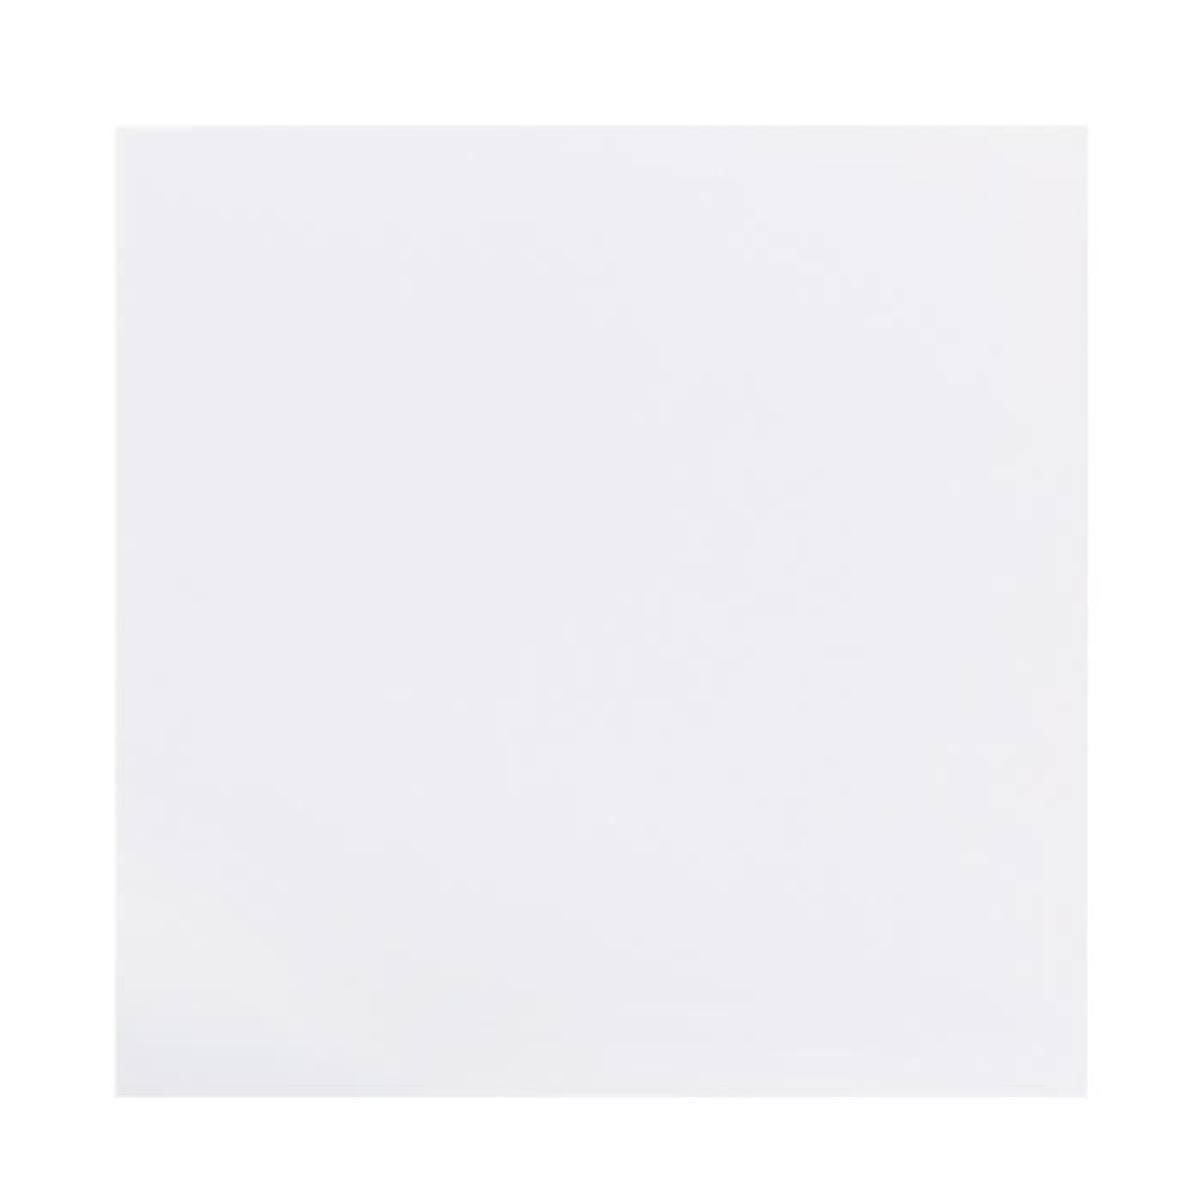 "Bazzill Self Adhesive Foam Sheets - 12"" x 12"", White, 15 sheets"